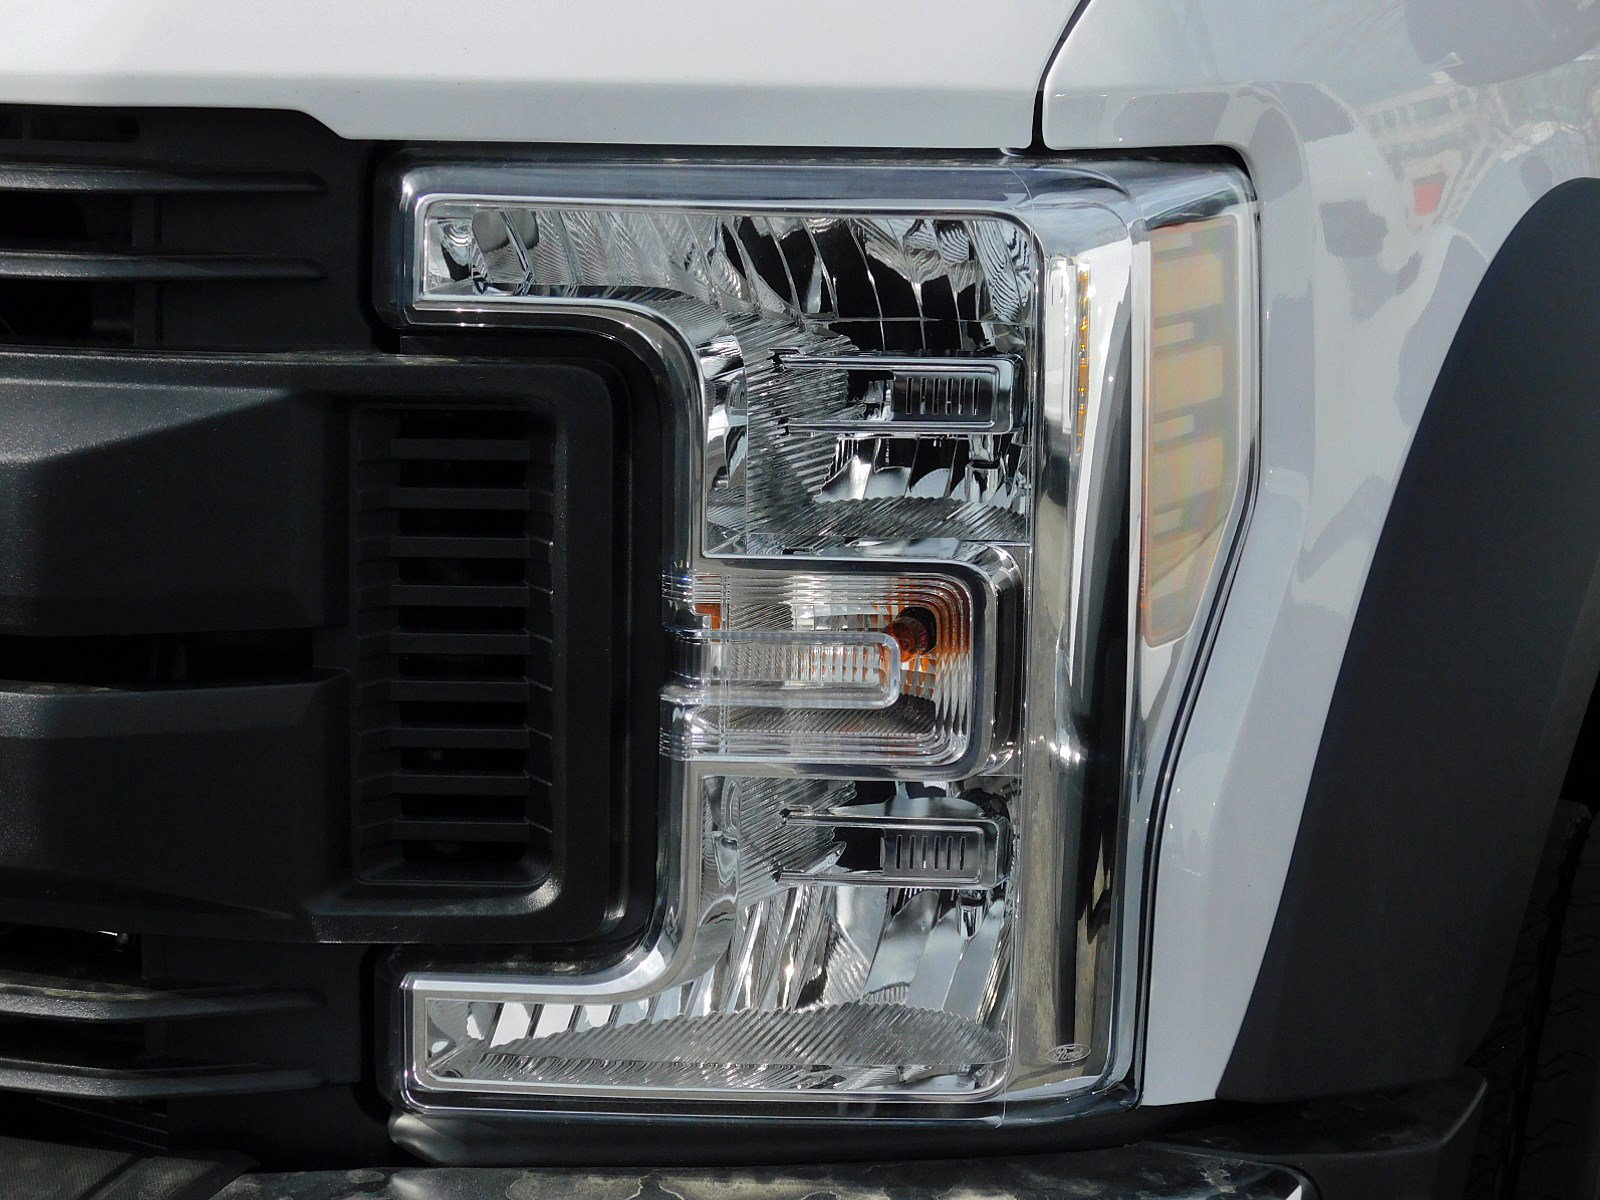 NEW 2019 FORD SUPER DUTY F-550 DRW TRUCK, CAB CHASSIS TRUCK #7010-6